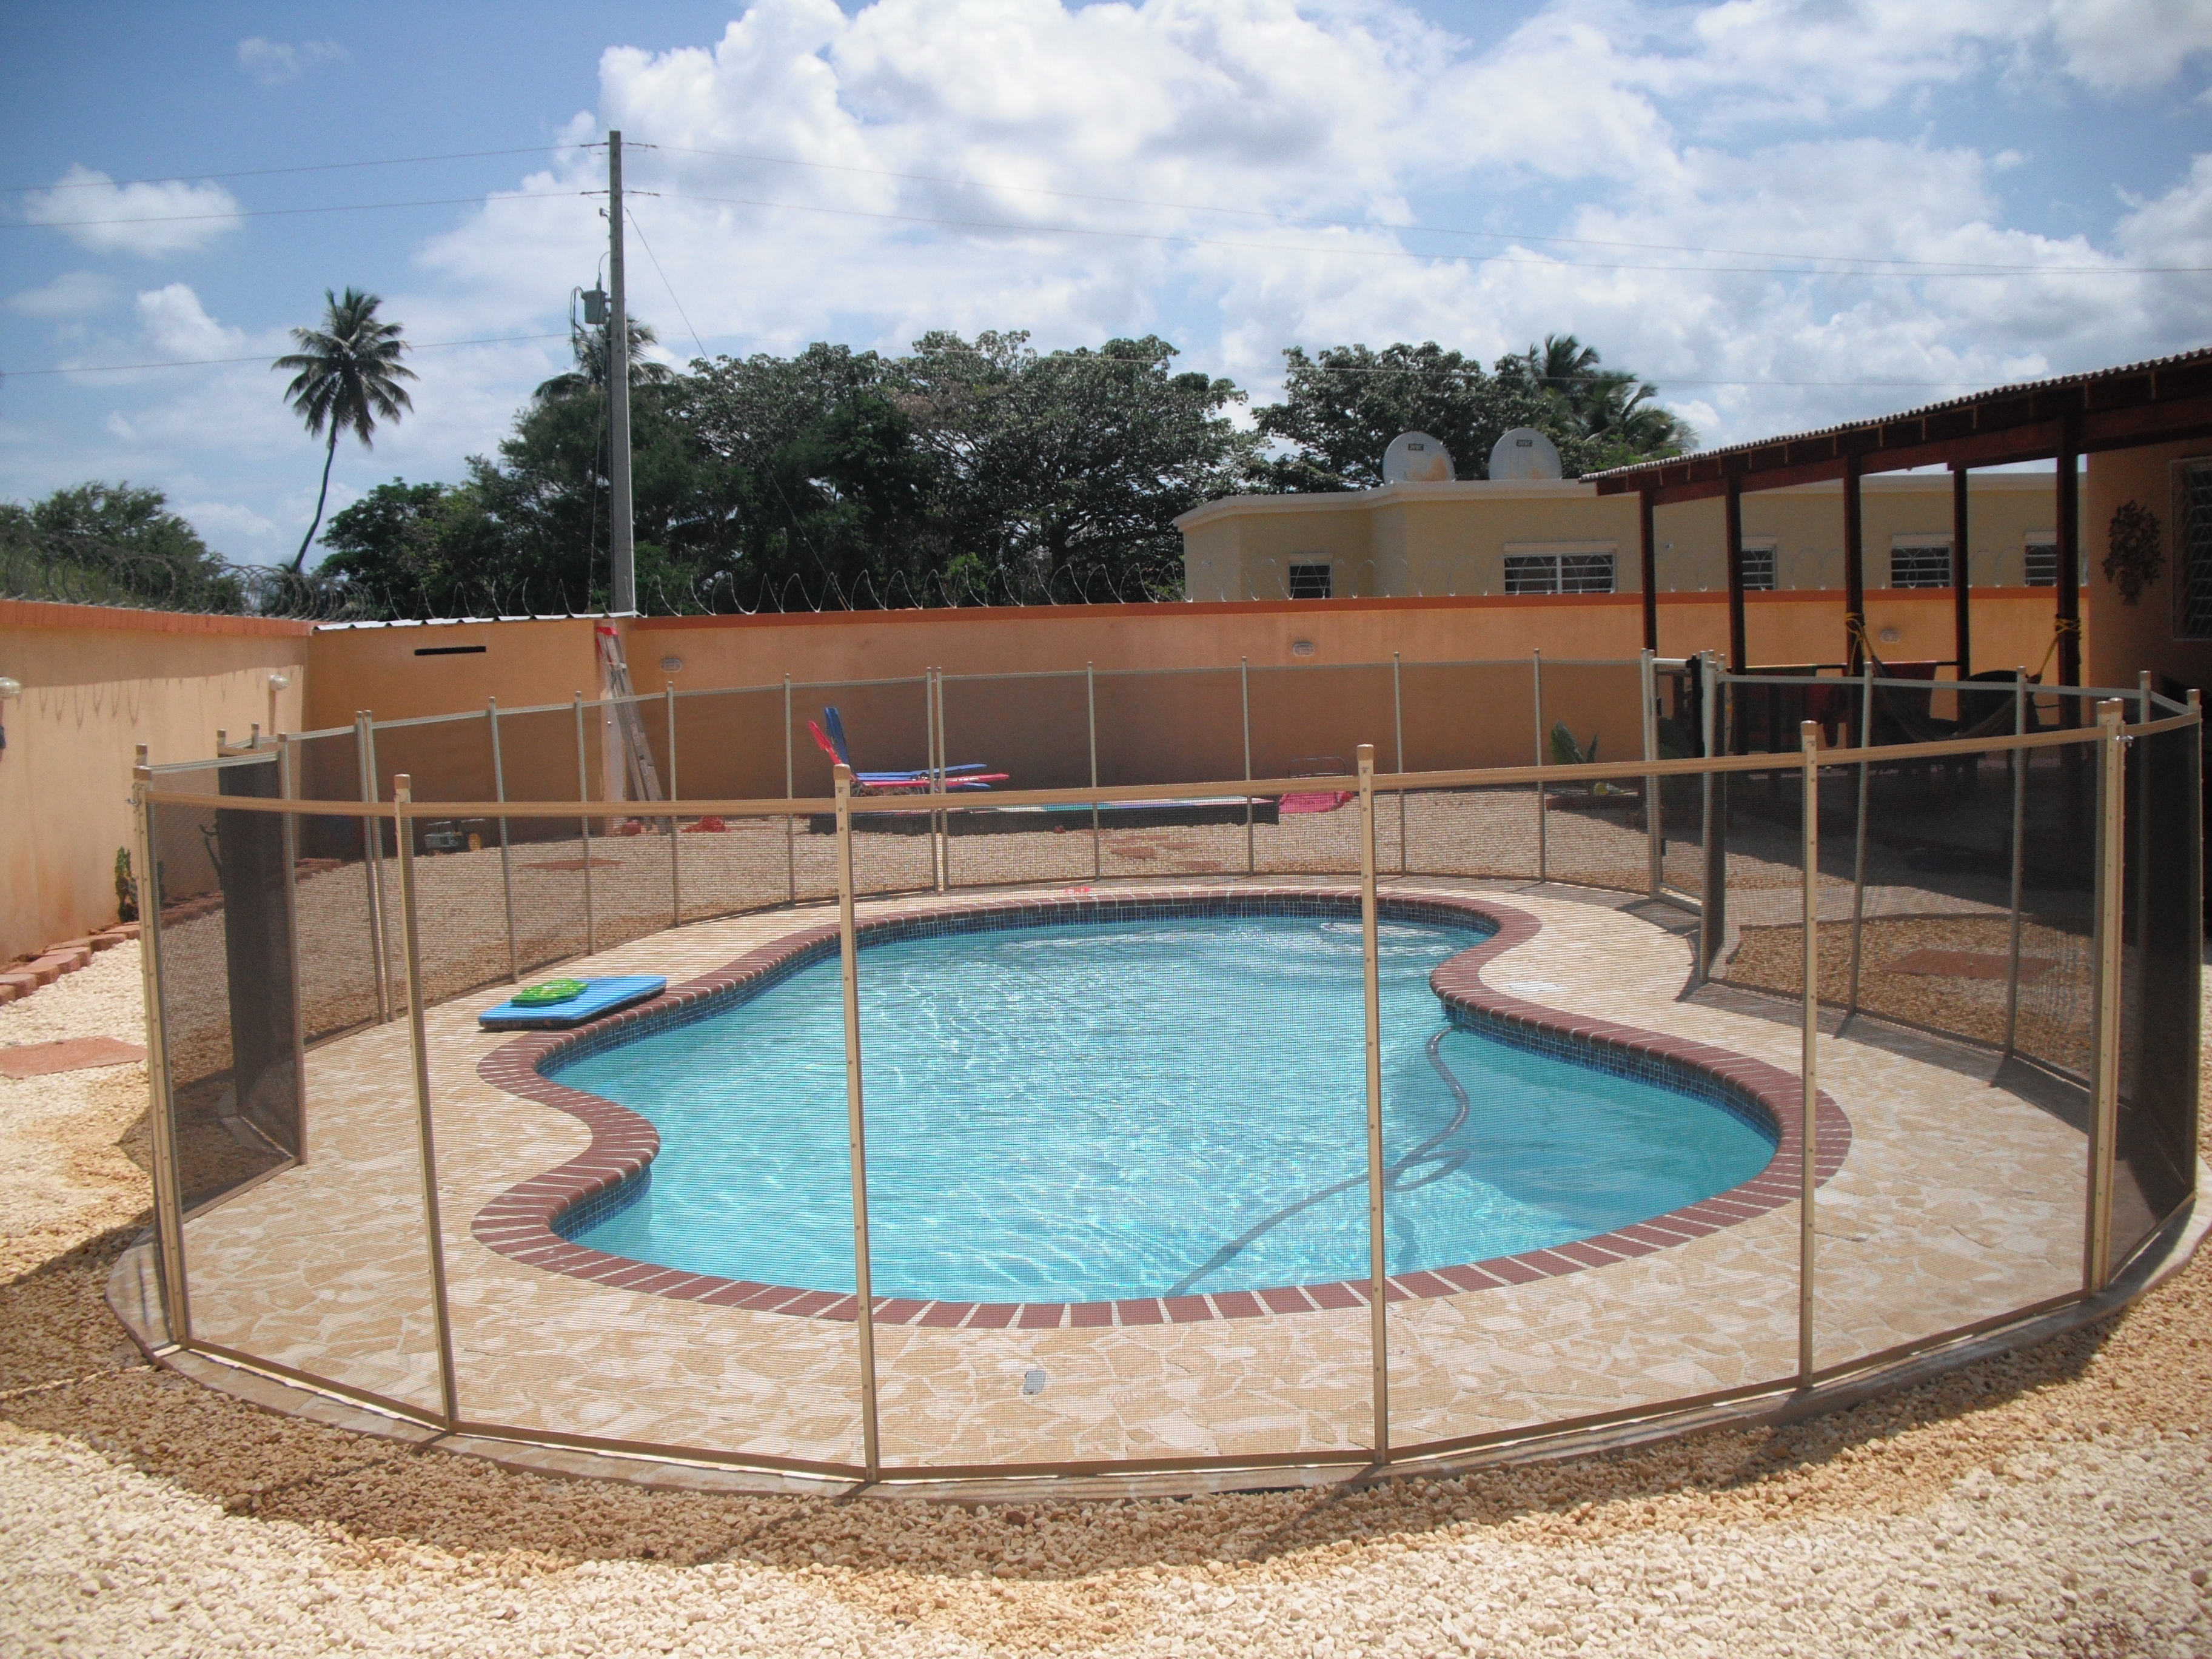 removable fence panels - Removable Pool Fence